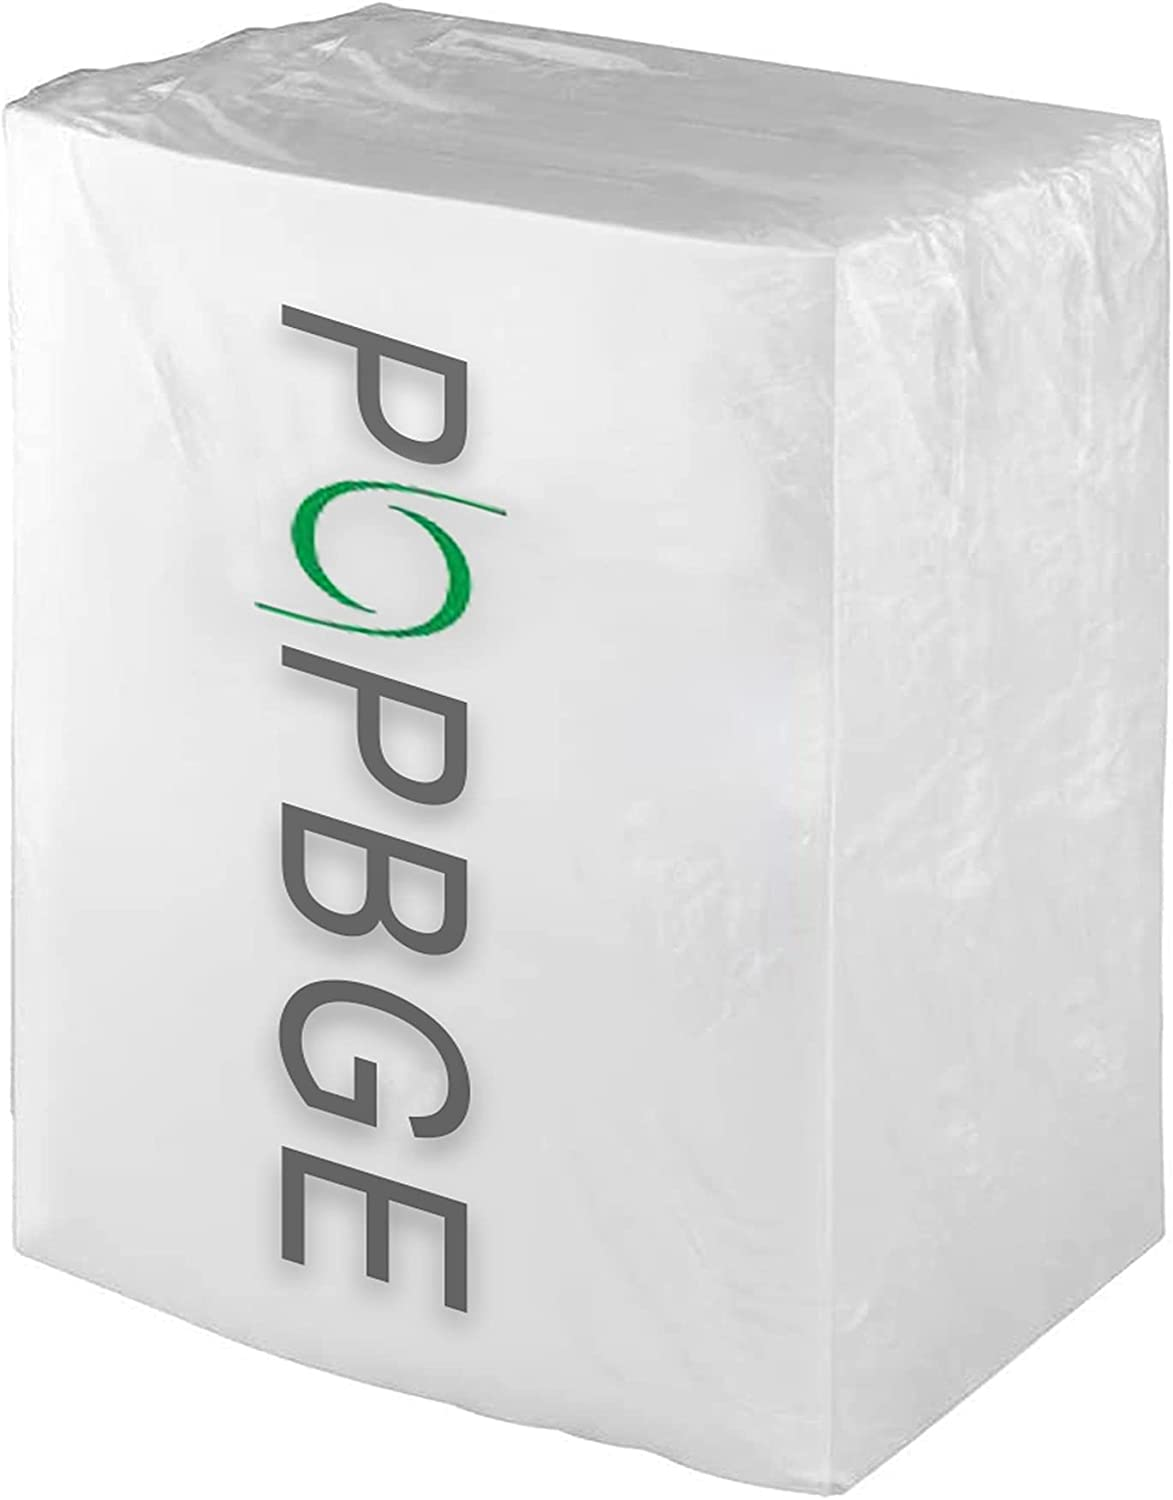 POPBGE 100 Quart Vacuum Sealer Bags 6''X 10'' for Food Saver Commercial Grade Fit All Machine Heavy Duty BPA-Free Great for Vac Storage Meal Prep or Sous Vide